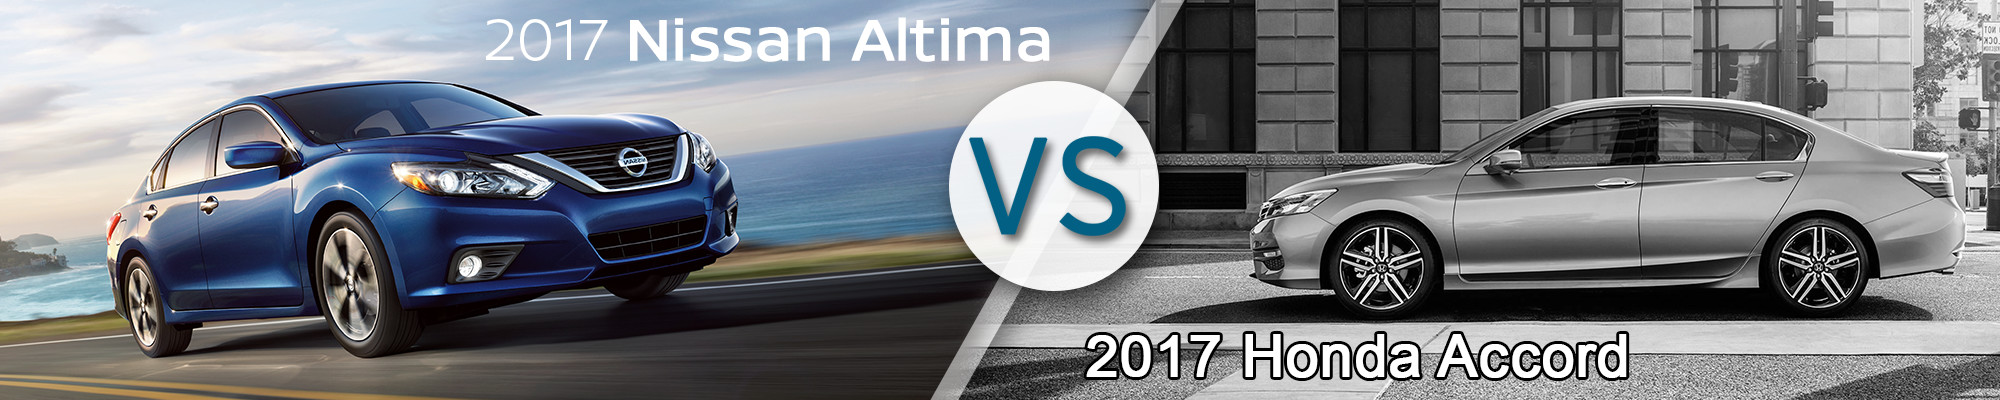 2017 Nissan Altima v. 2017 Honda Civic